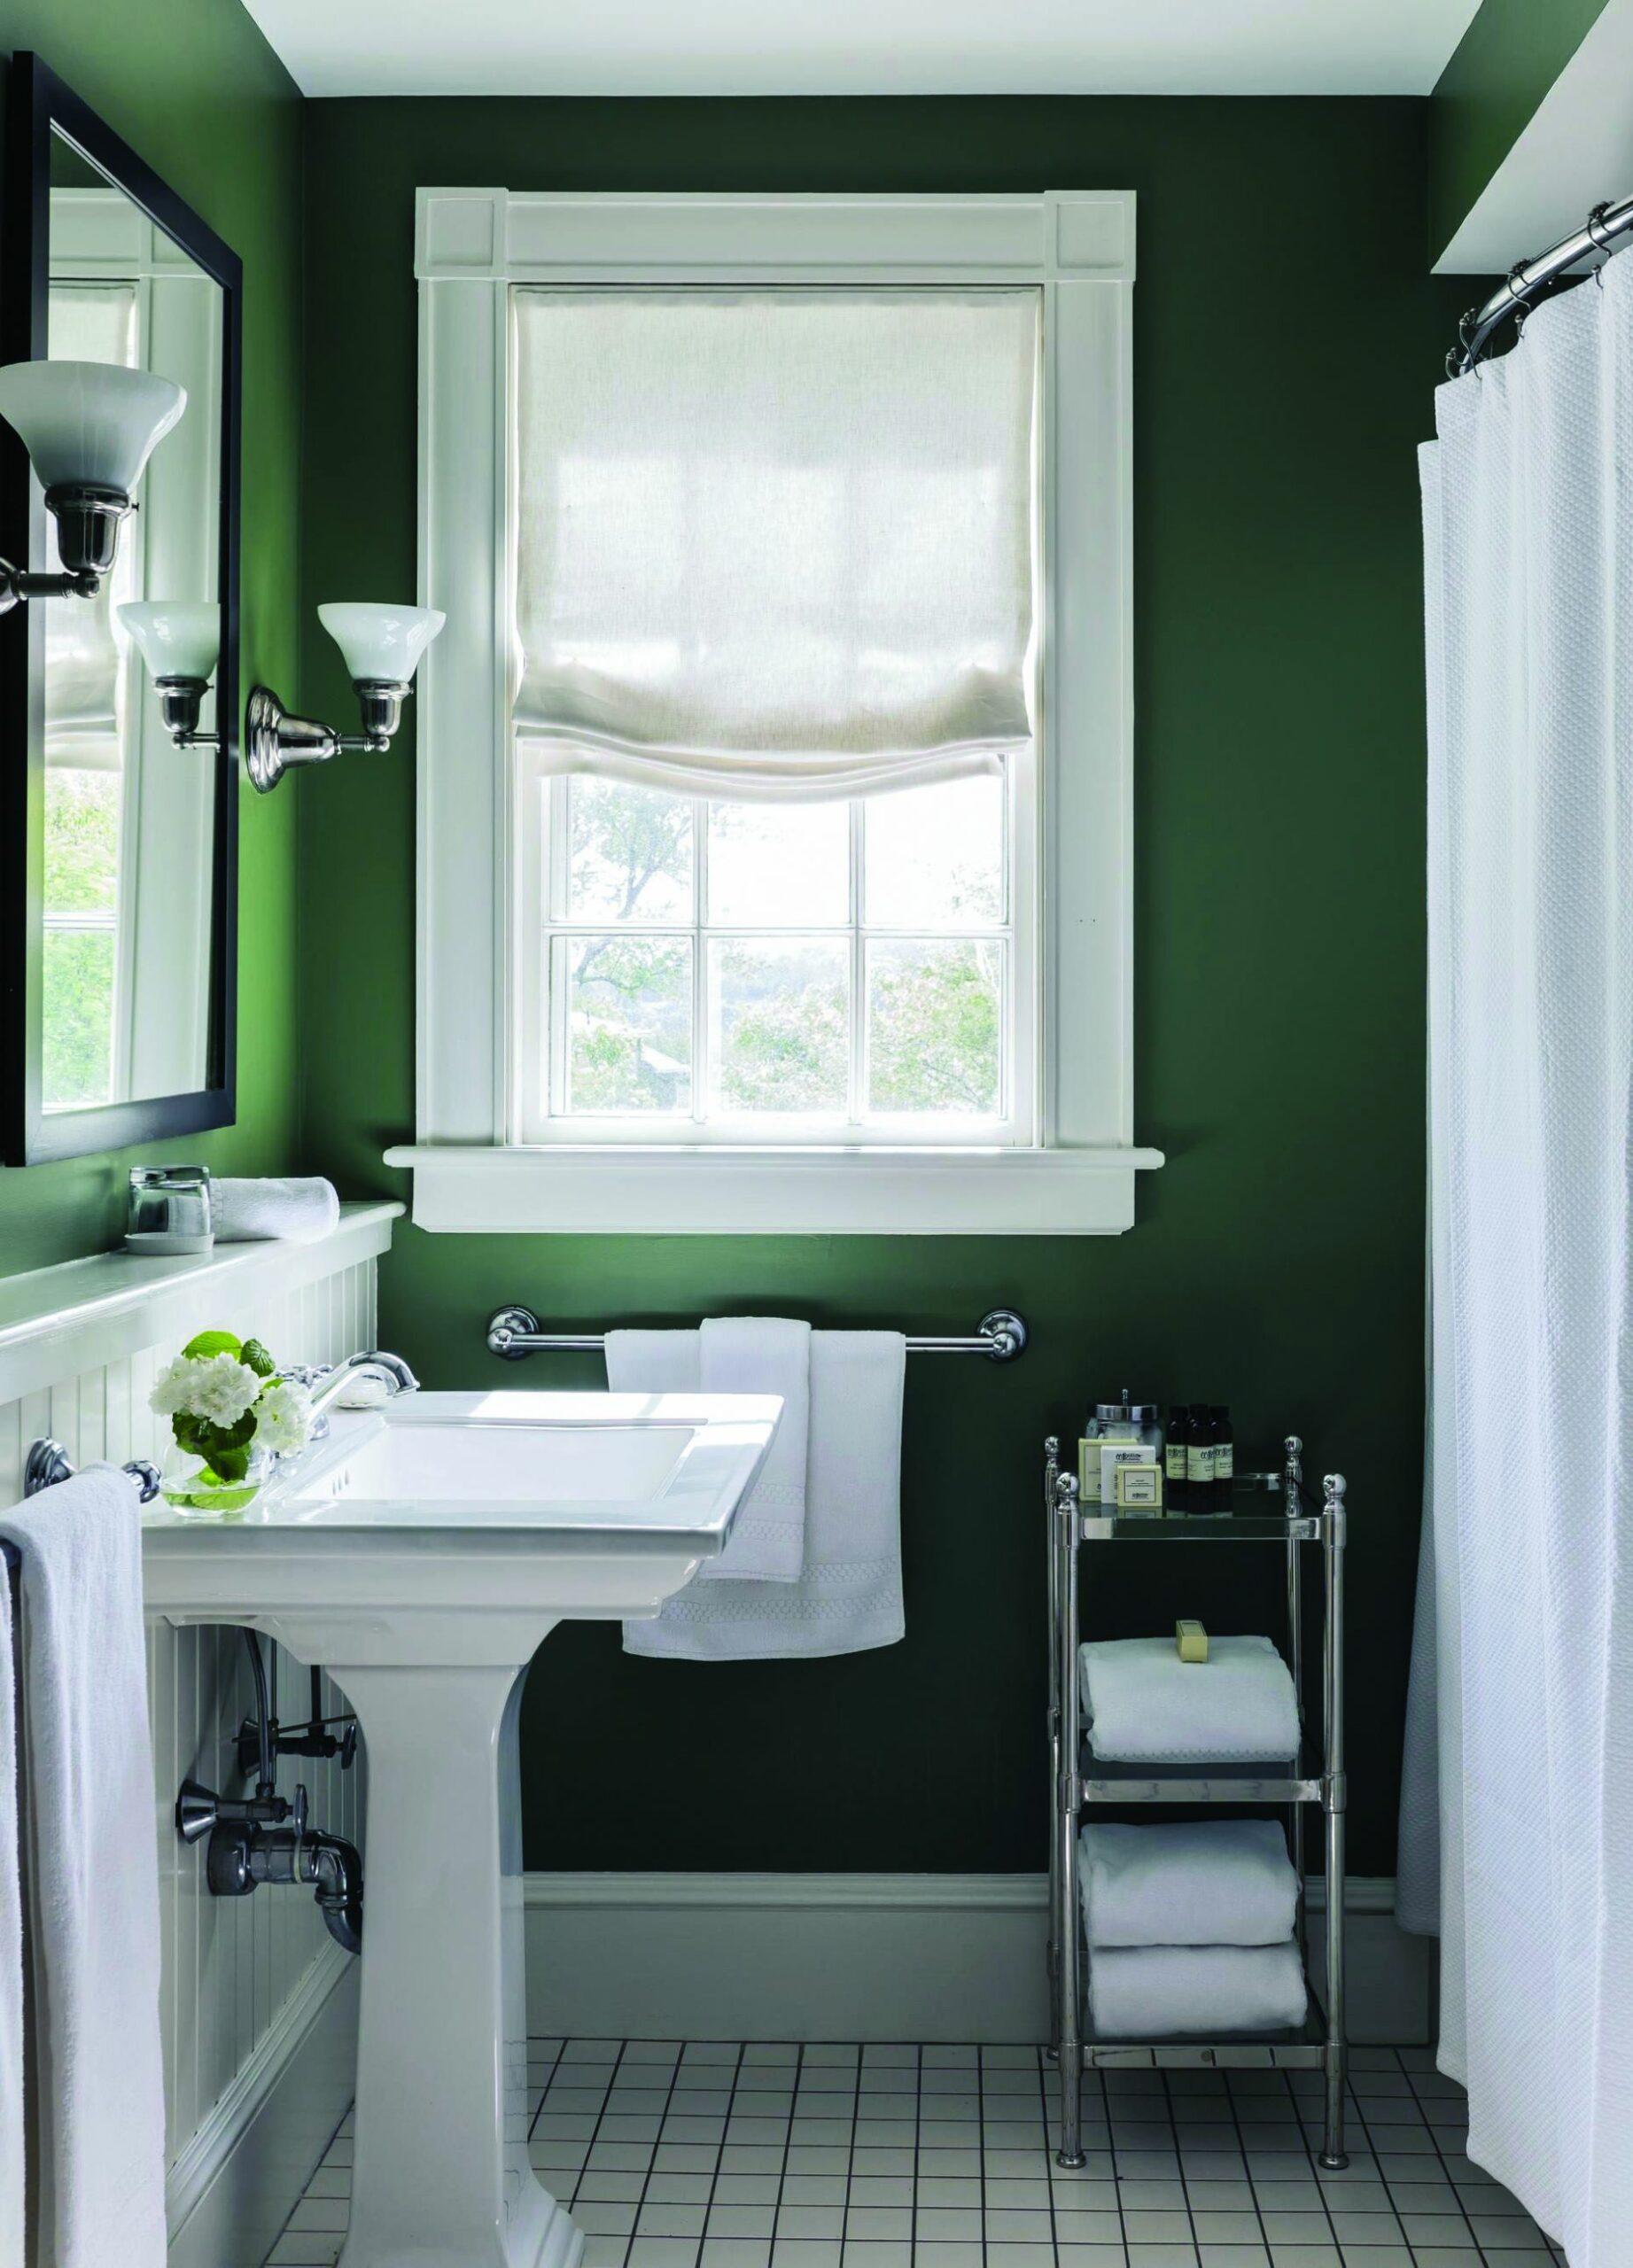 12 Paint Color Ideas for Small Bathrooms (With images) | Green ...